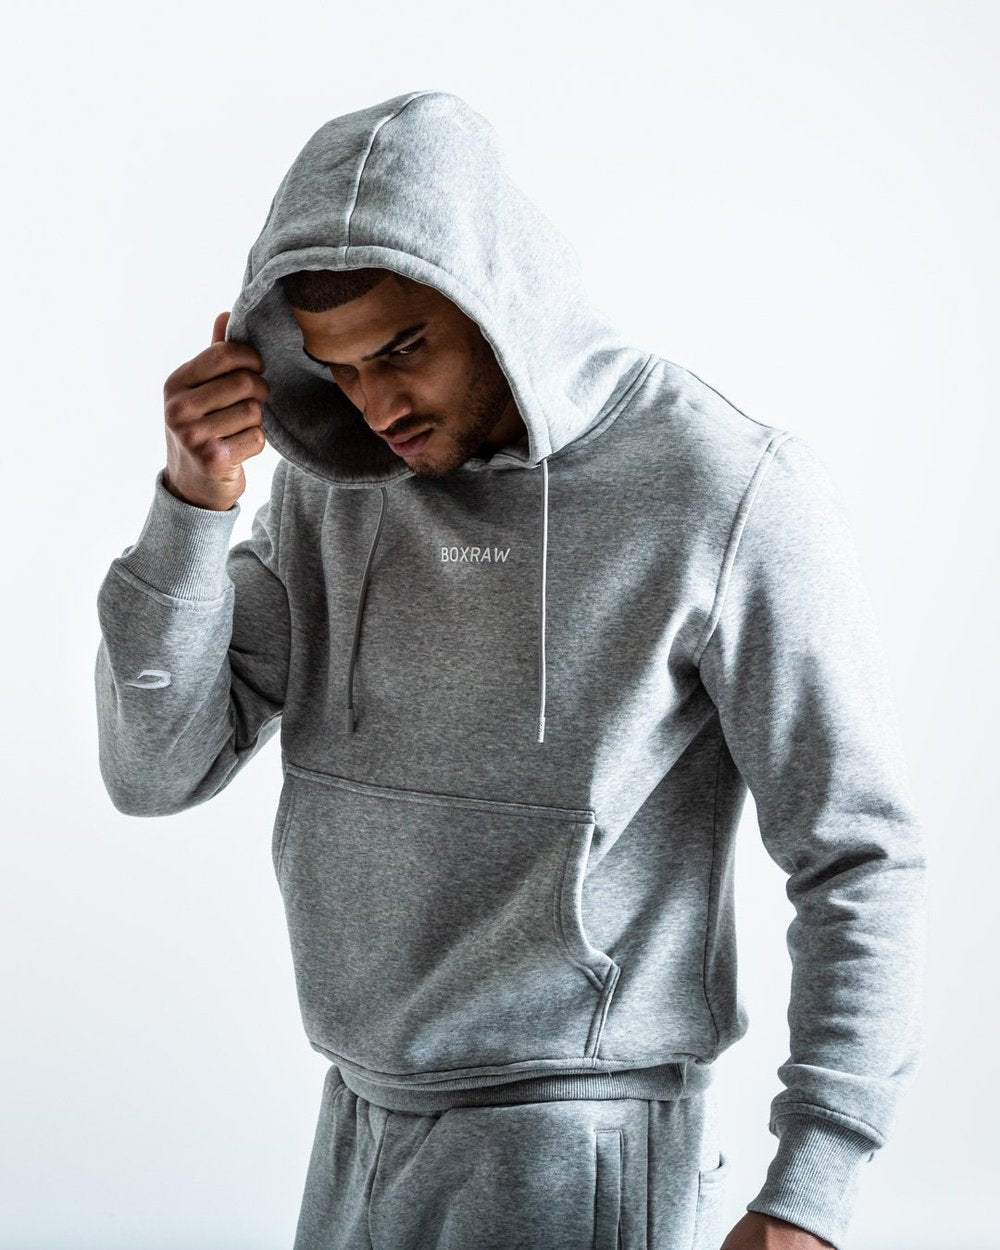 JOHNSON HOODIE - GREY - Pandemic Fight Gear Inc.